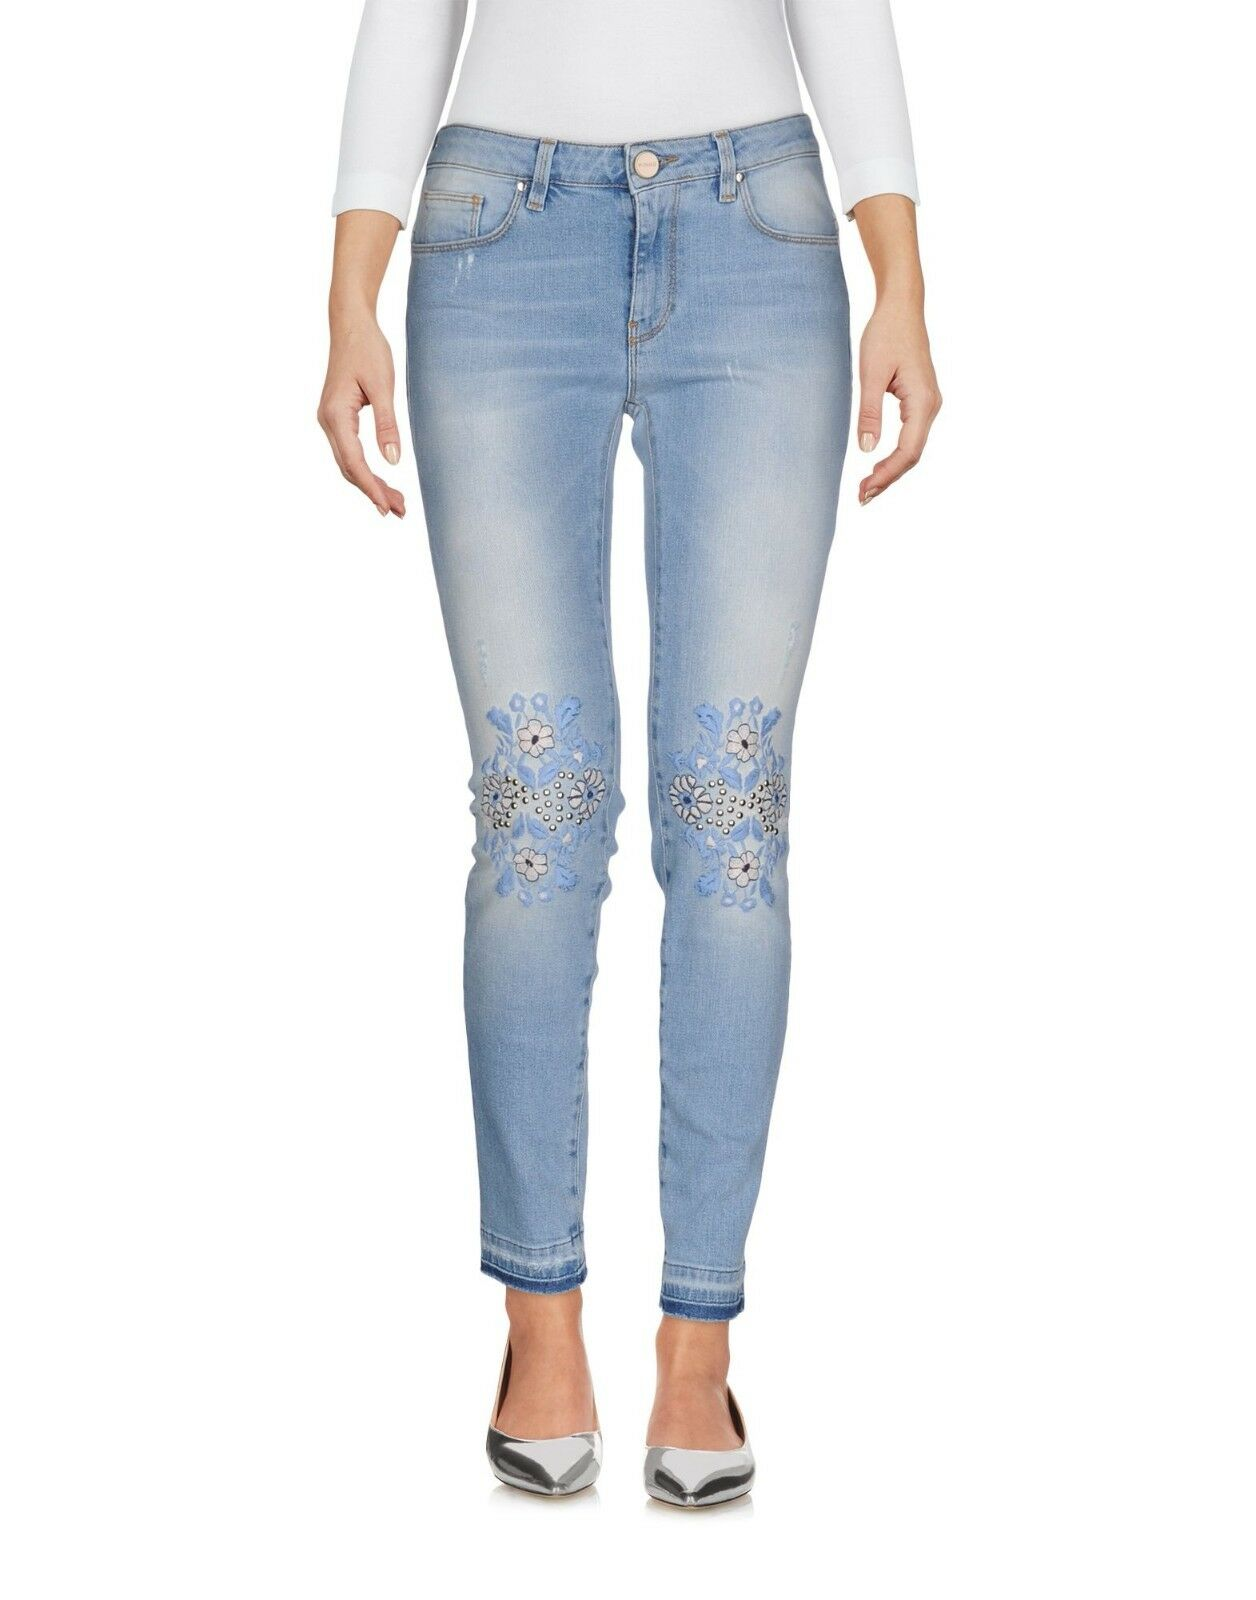 Jeans Donna Pantaloni rosaO Made in  H300 Tg 28